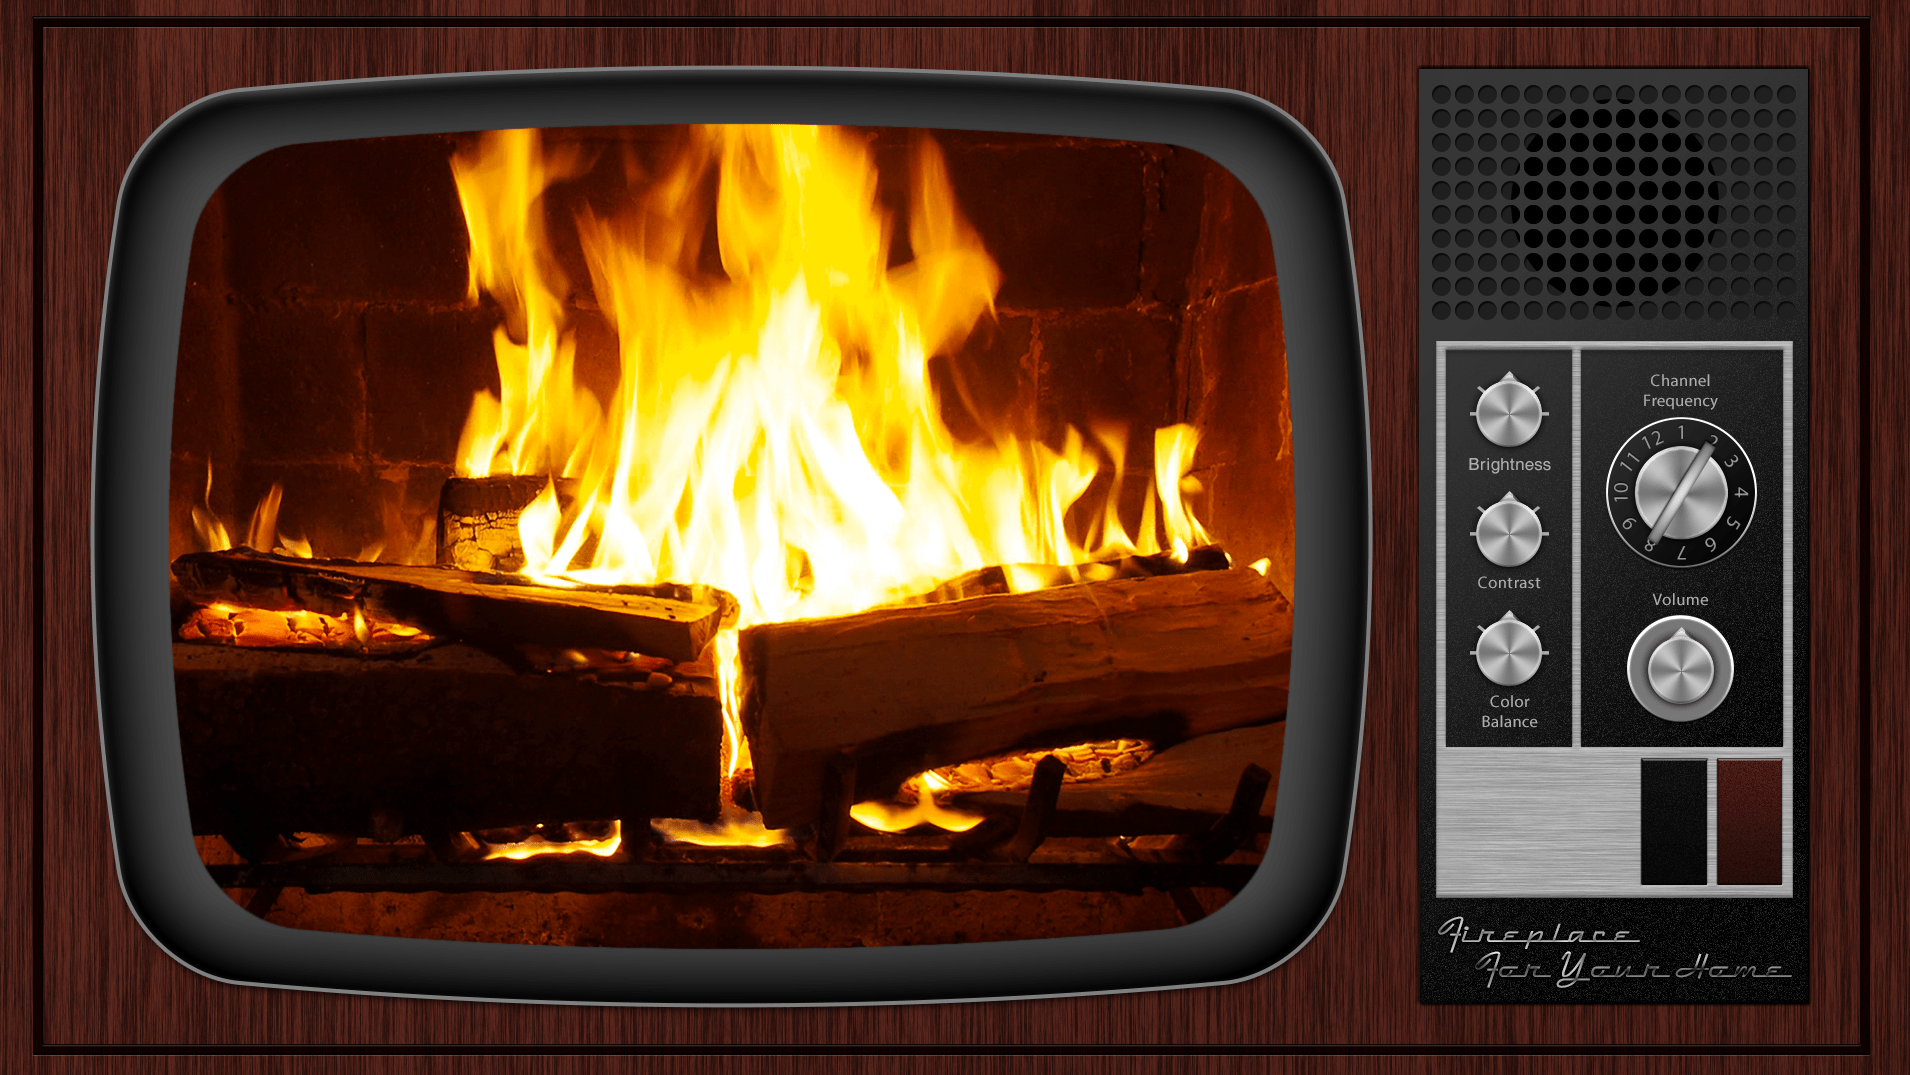 Gas Log Starters For Fireplace The Best Yule Log Videos On The Internet Quartzy